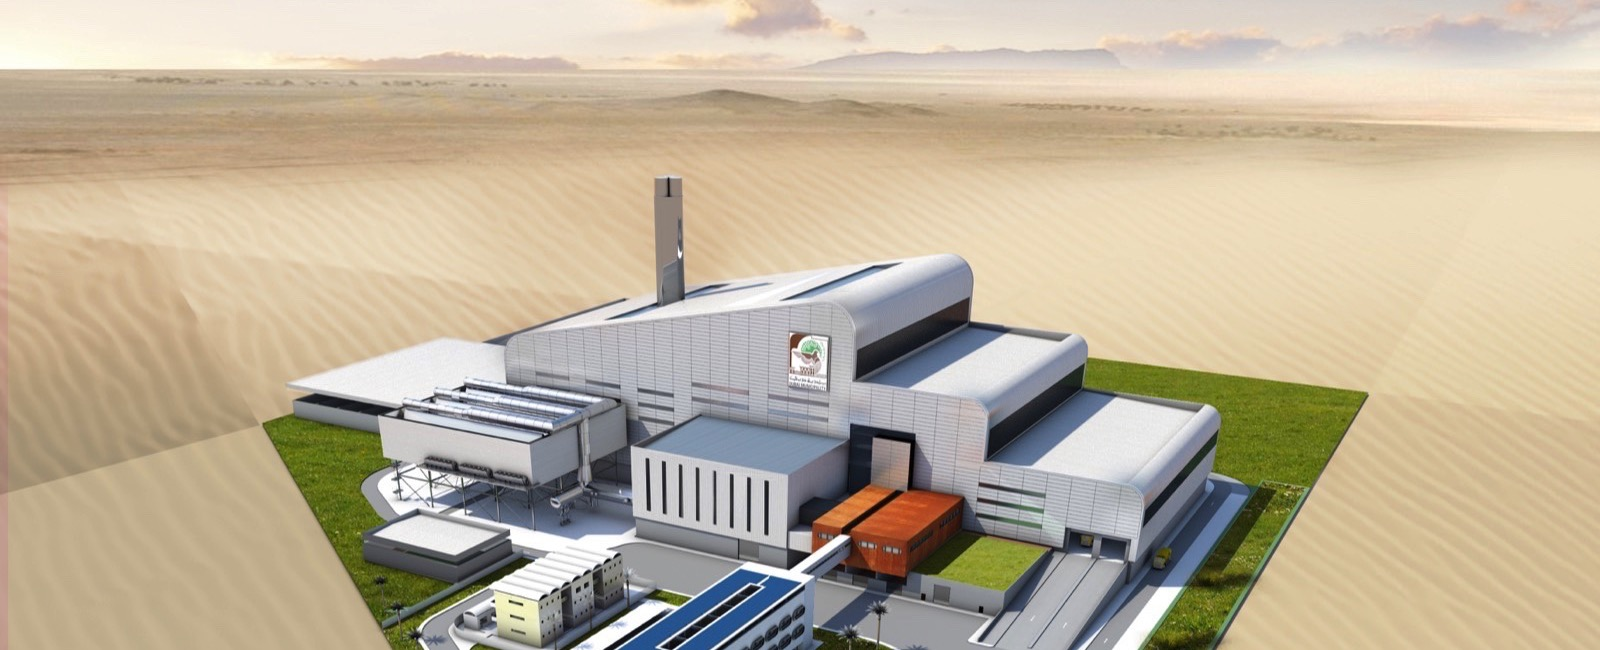 Hitachi Zosen Inova to build the World's largest Energy from Waste Plant in Dubai